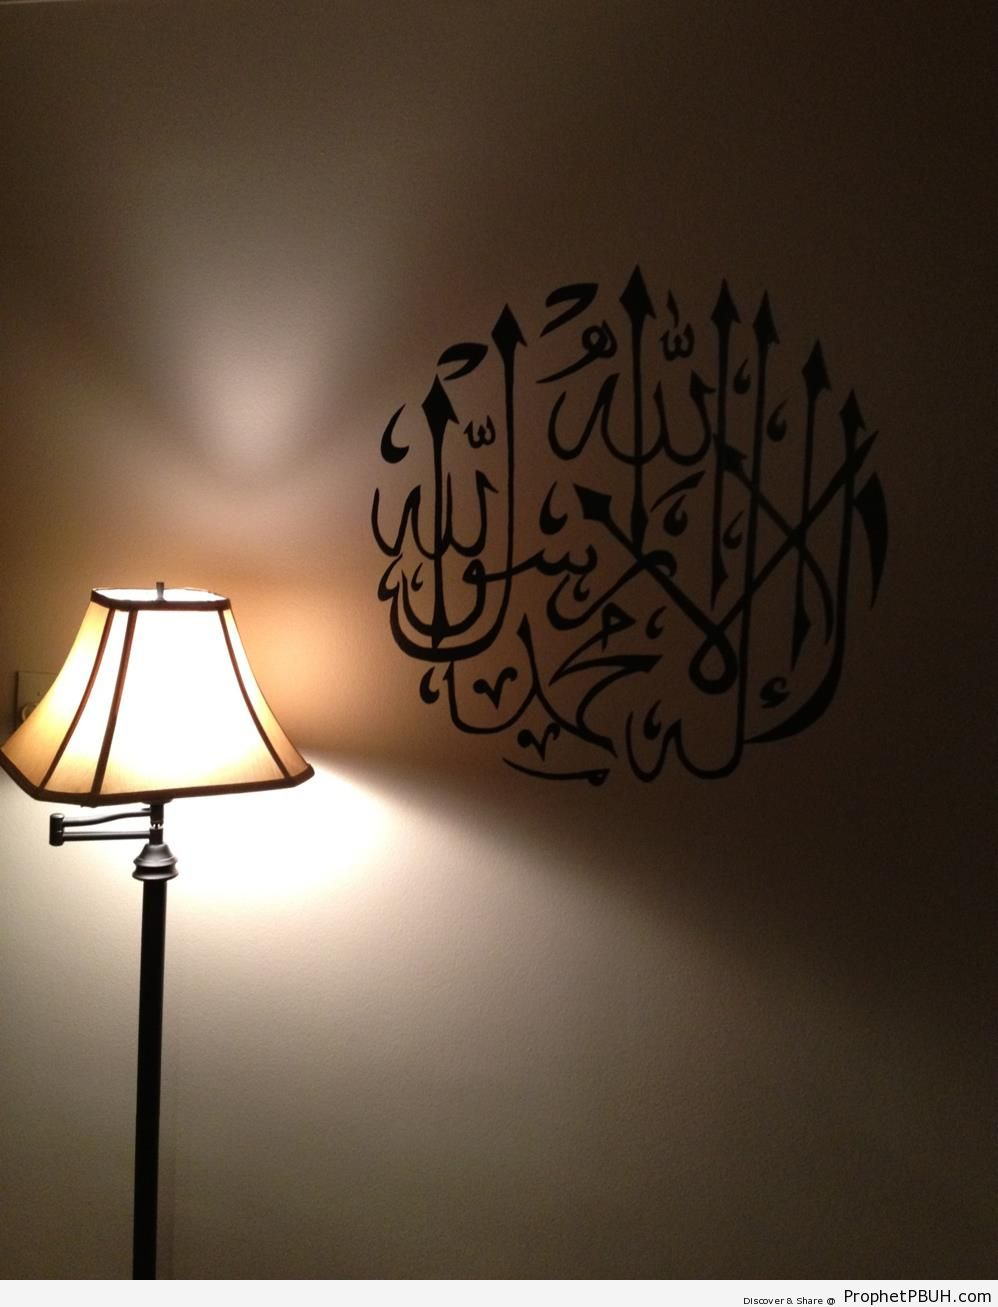 Shahadah Calligraphy Written on Wall by Lamp - Islamic Calligraphy and Typography